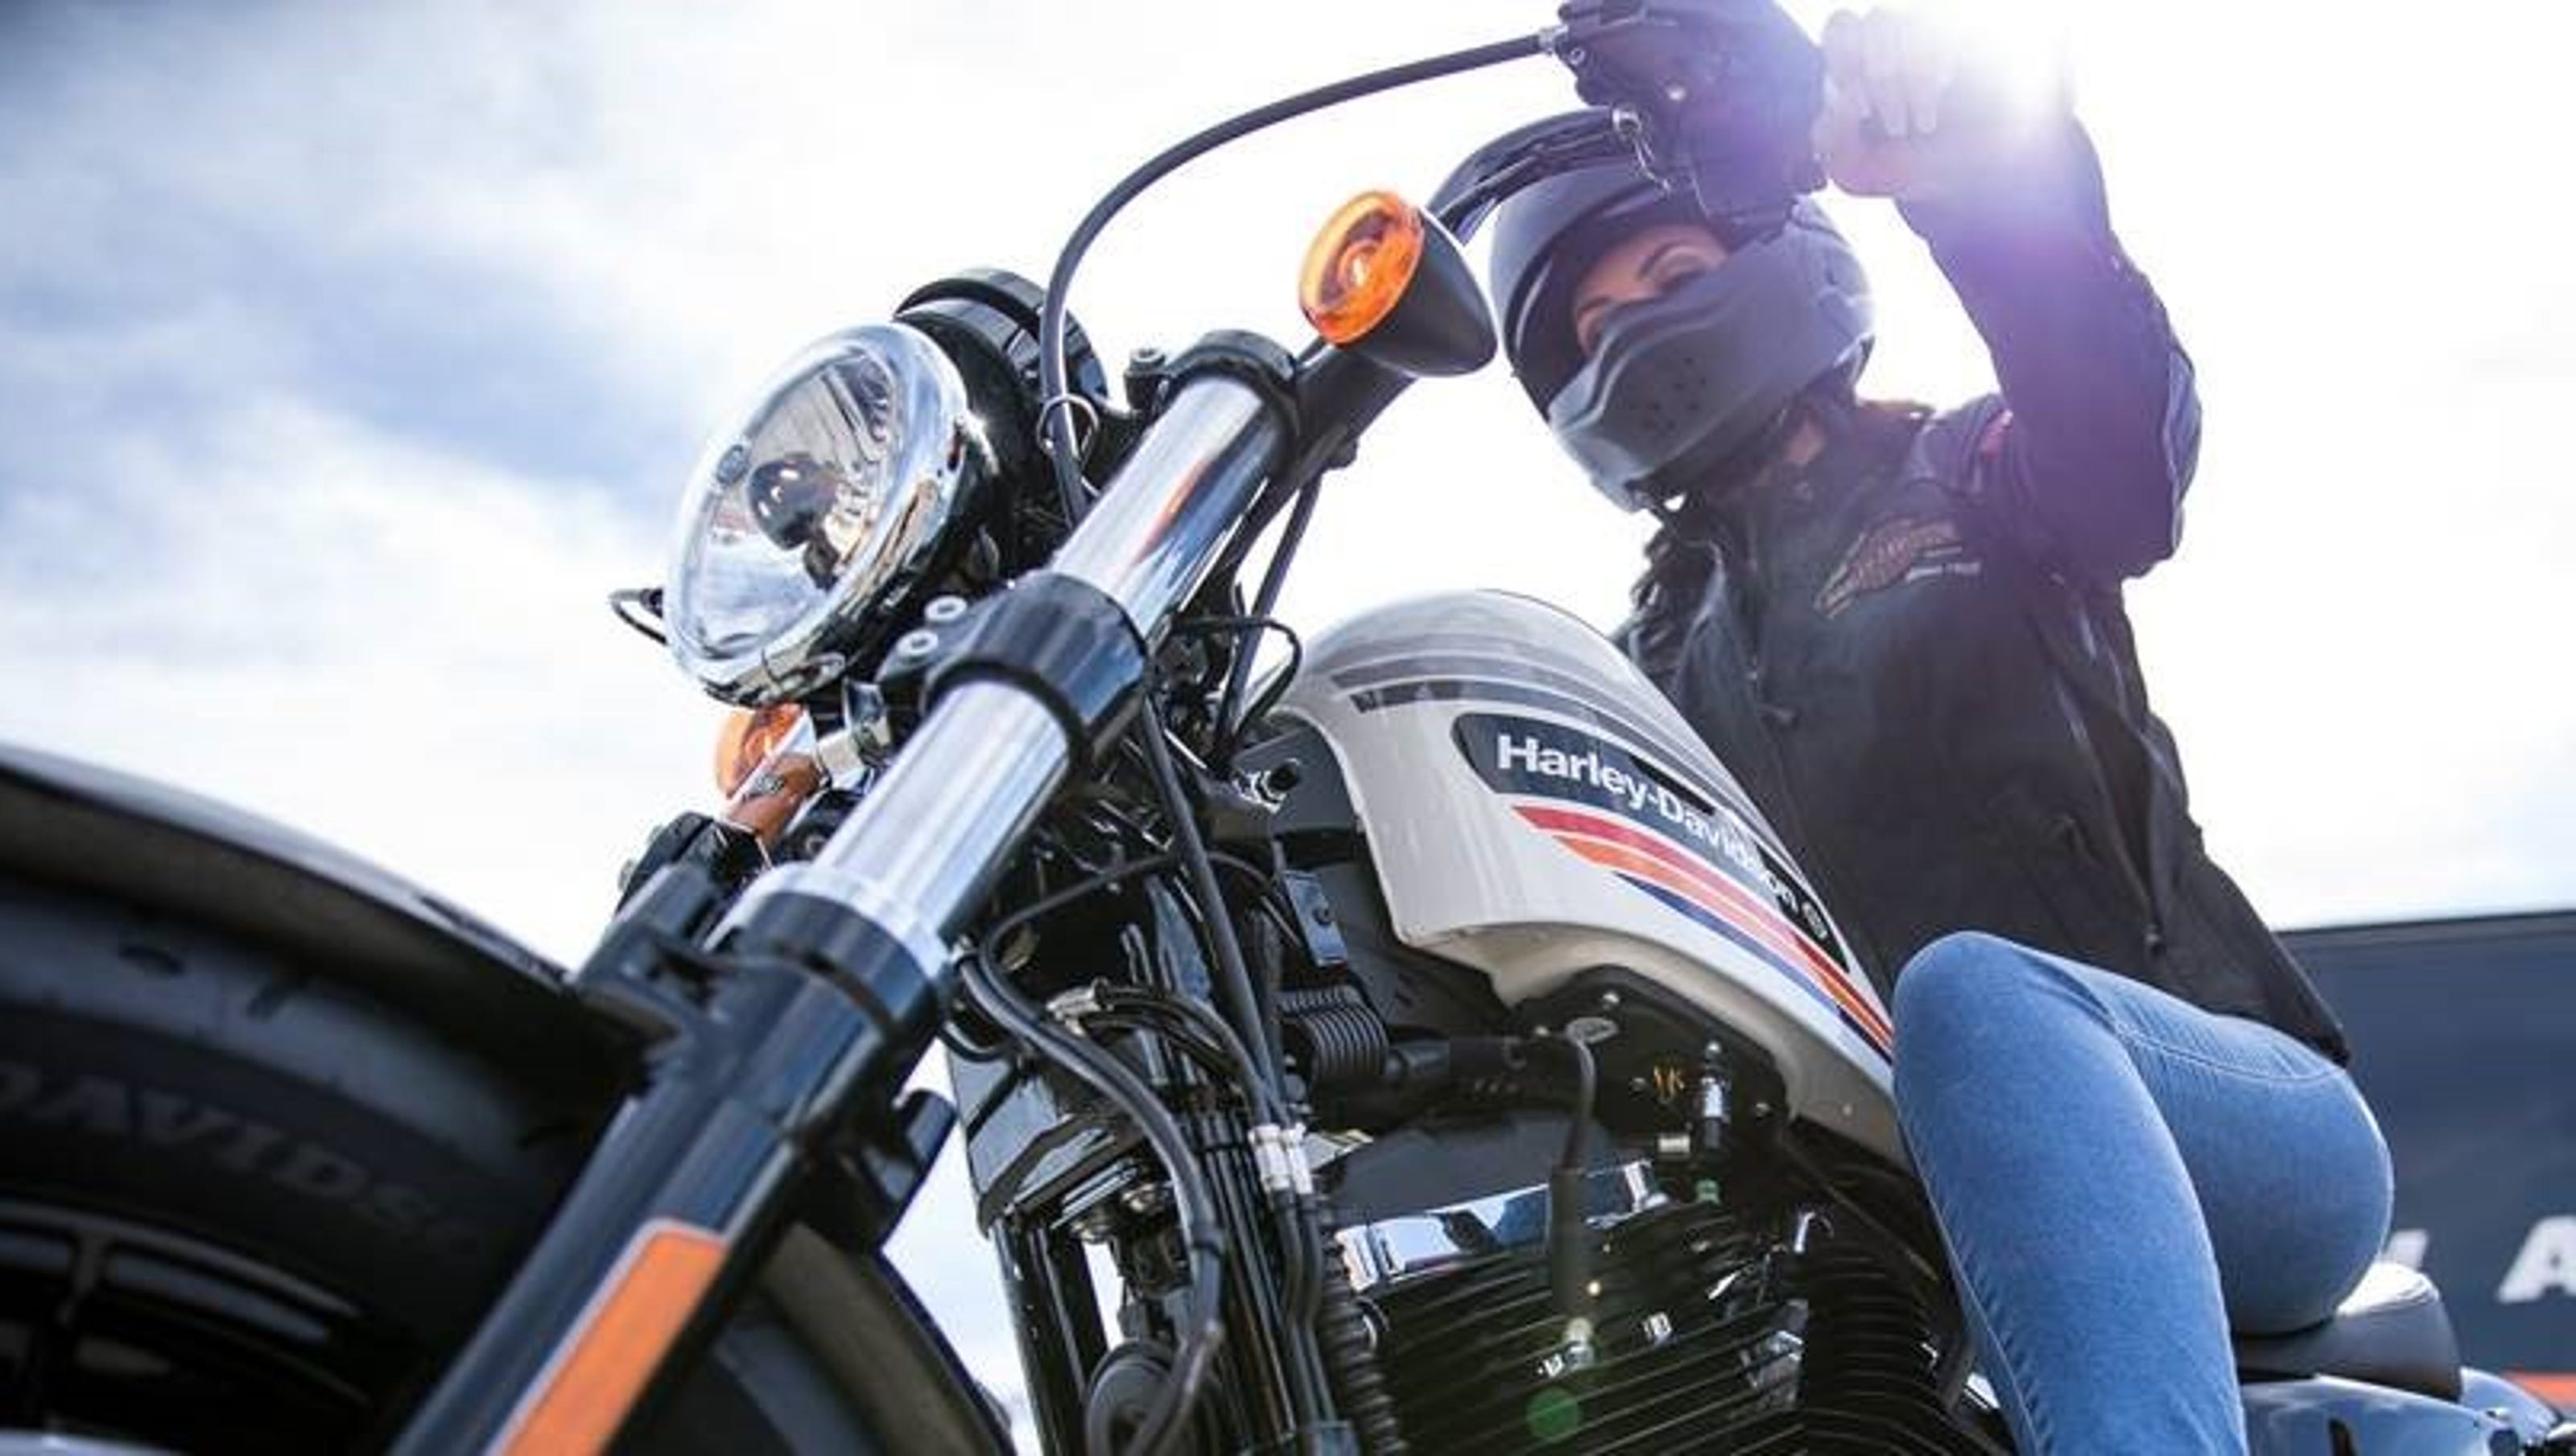 Harley s new intern deal Ride a bike all summer — and keep it